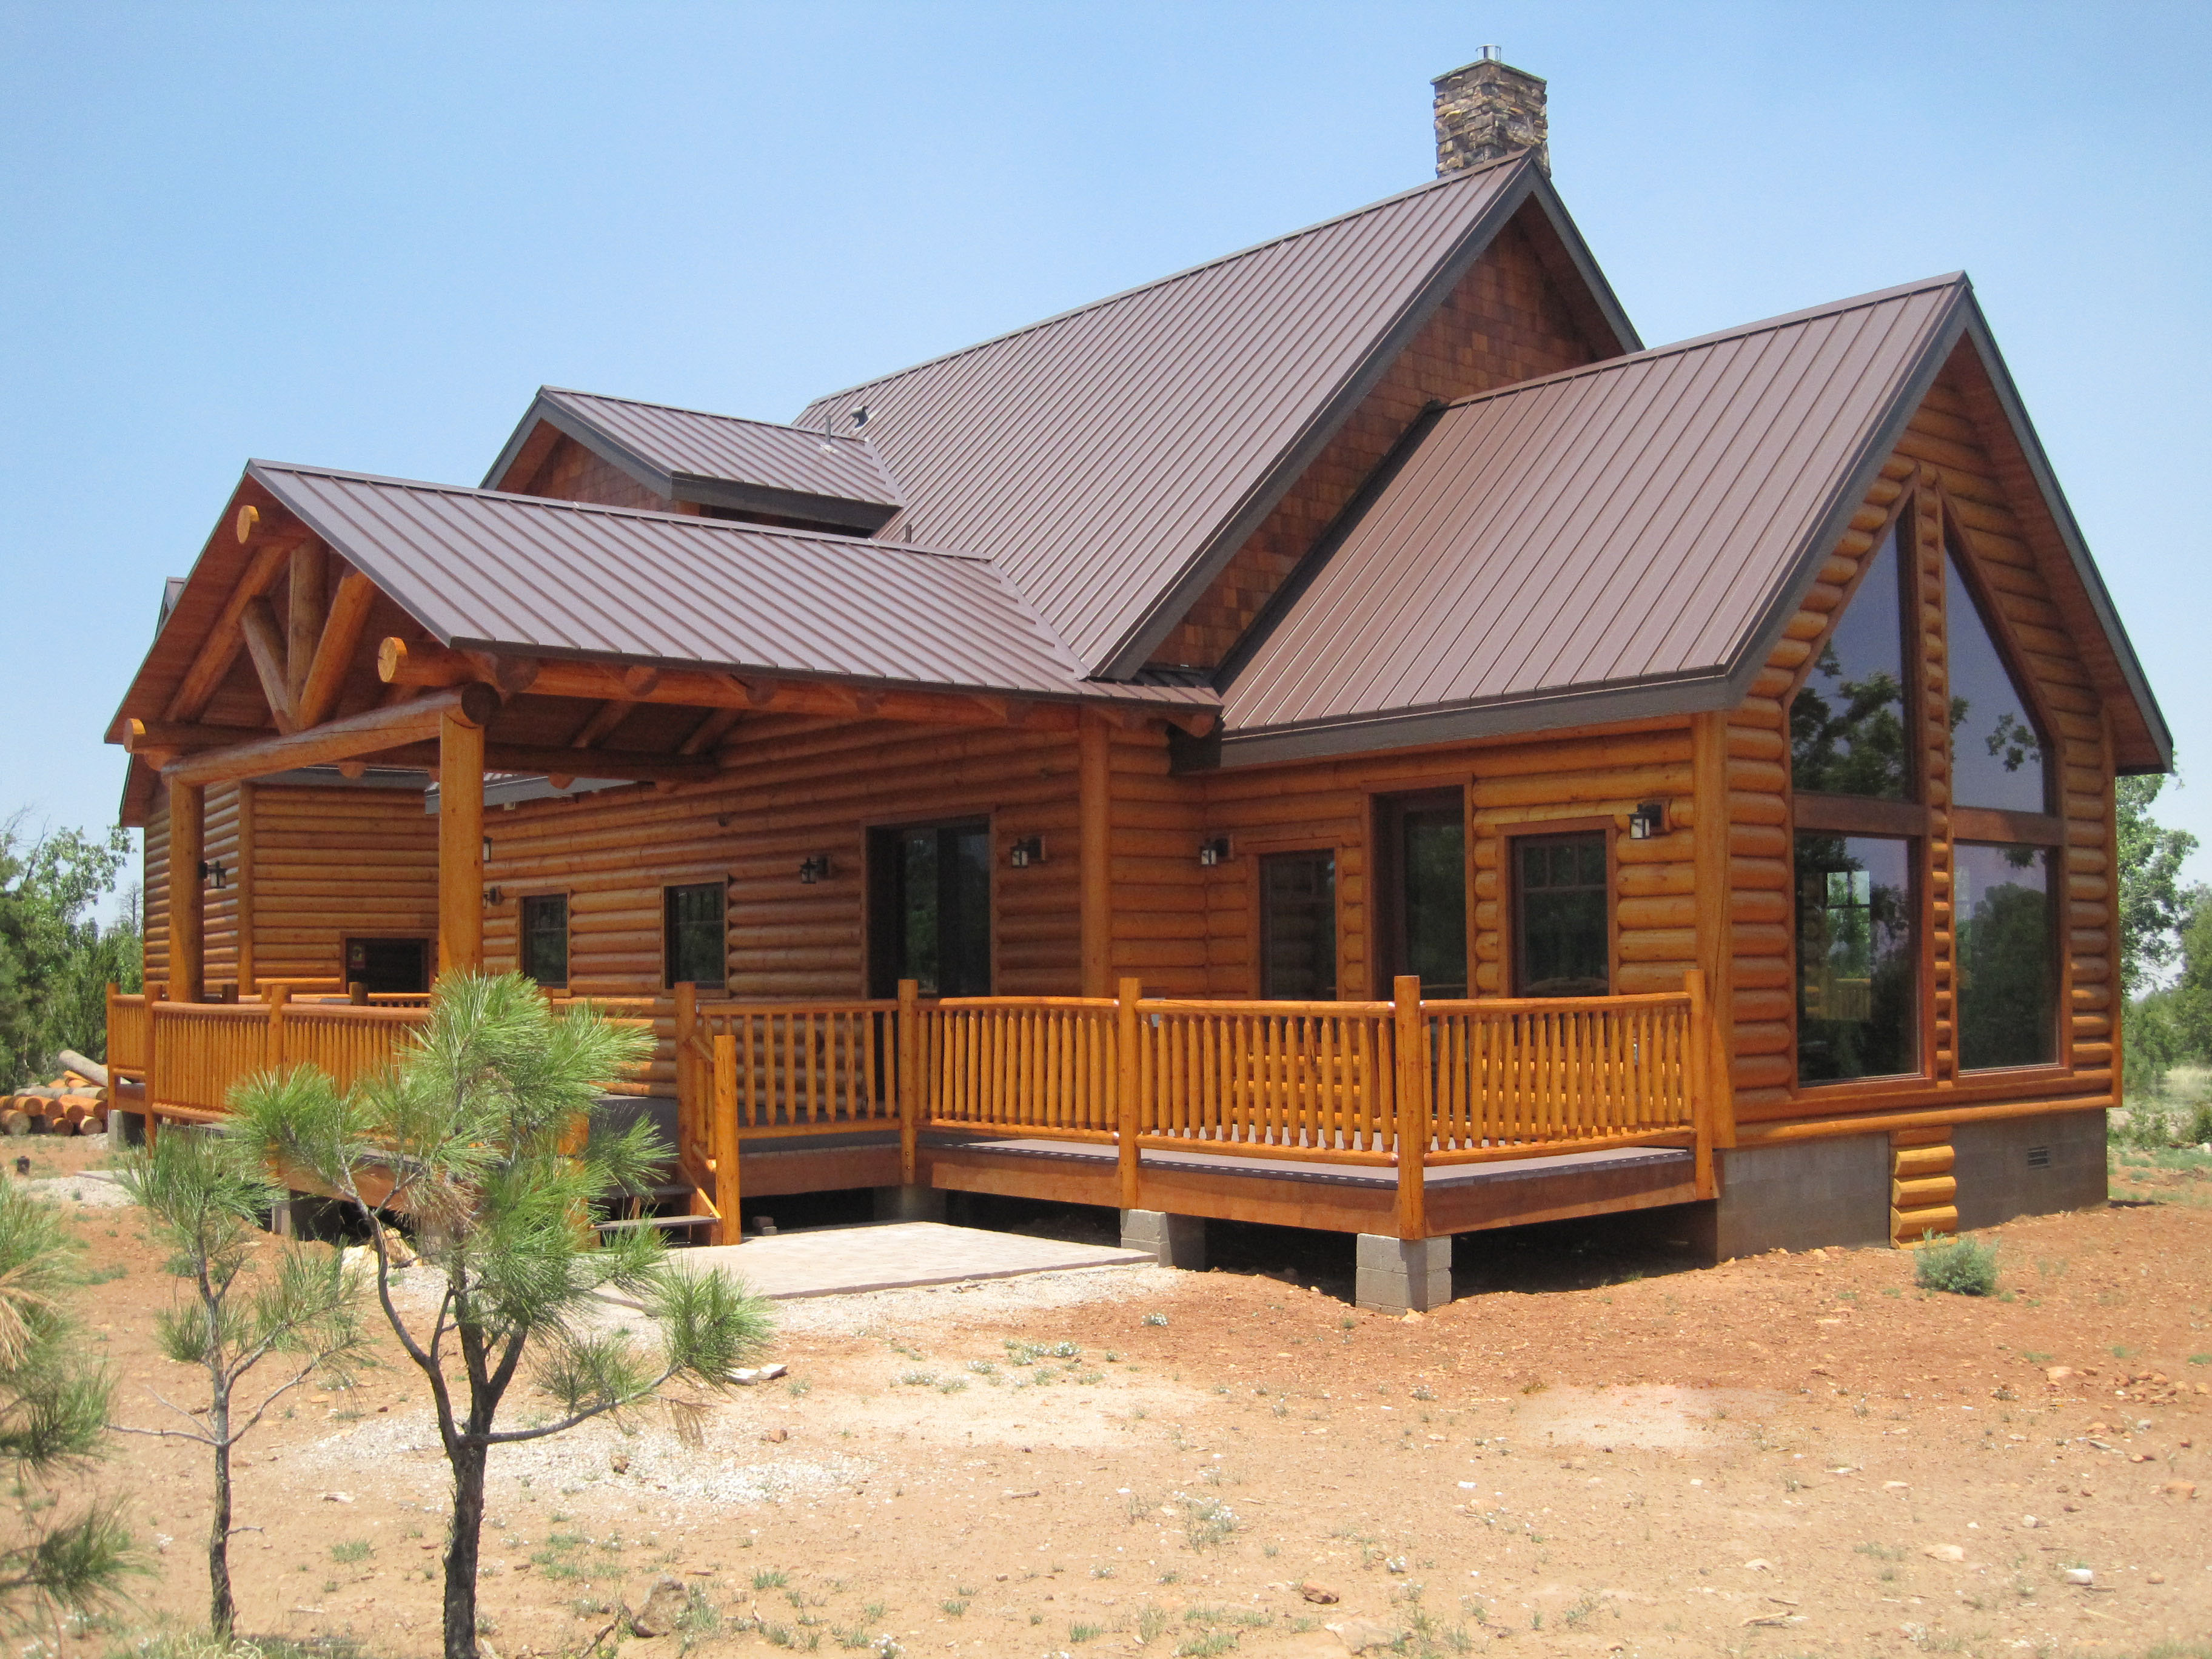 Image of: log cabins designs